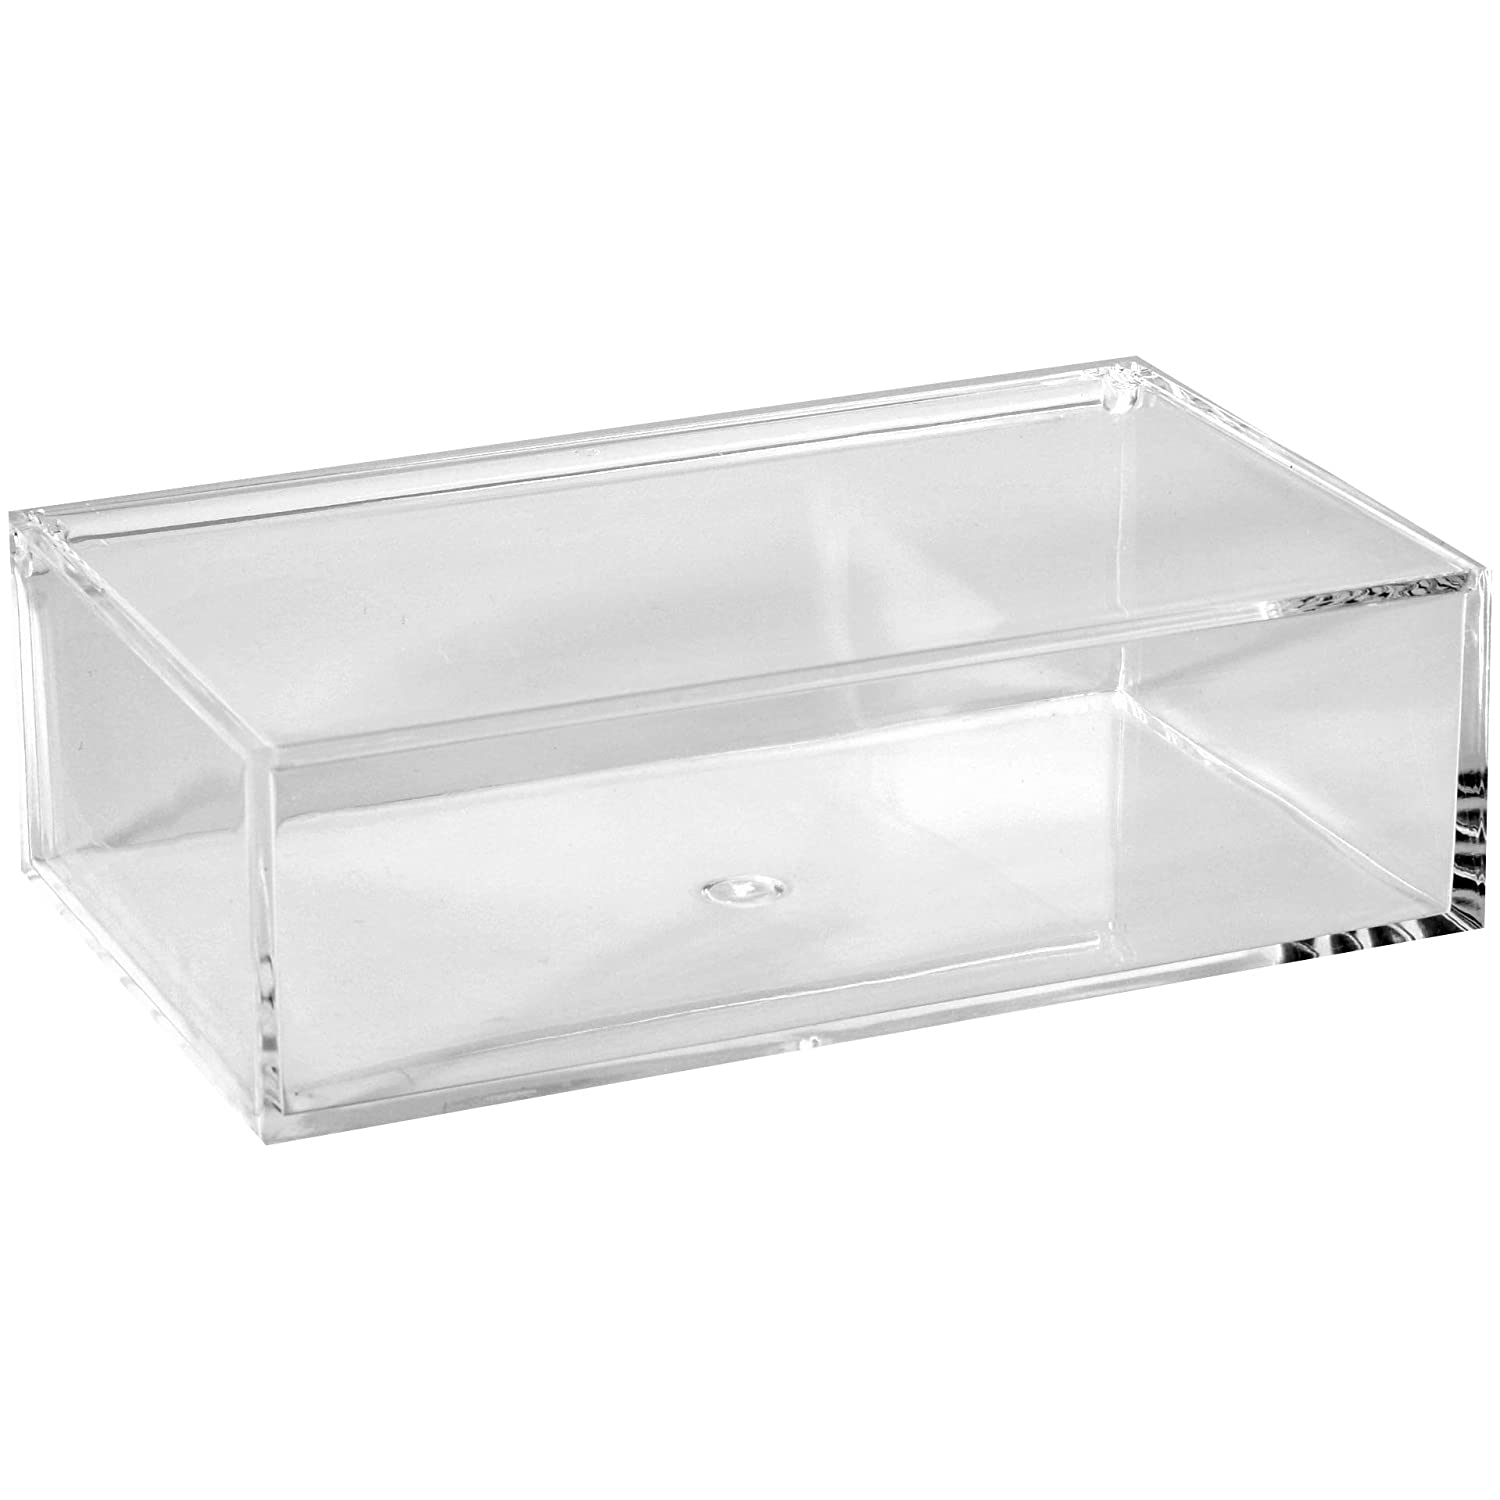 Clear Lucite Plastic Storage Box with Hinged Lid- Acrylic Boxes For Wedding, Party Favor, Treats, Candy Mini Gifts, Sewing Set, Cosmetic Organizer 6.3